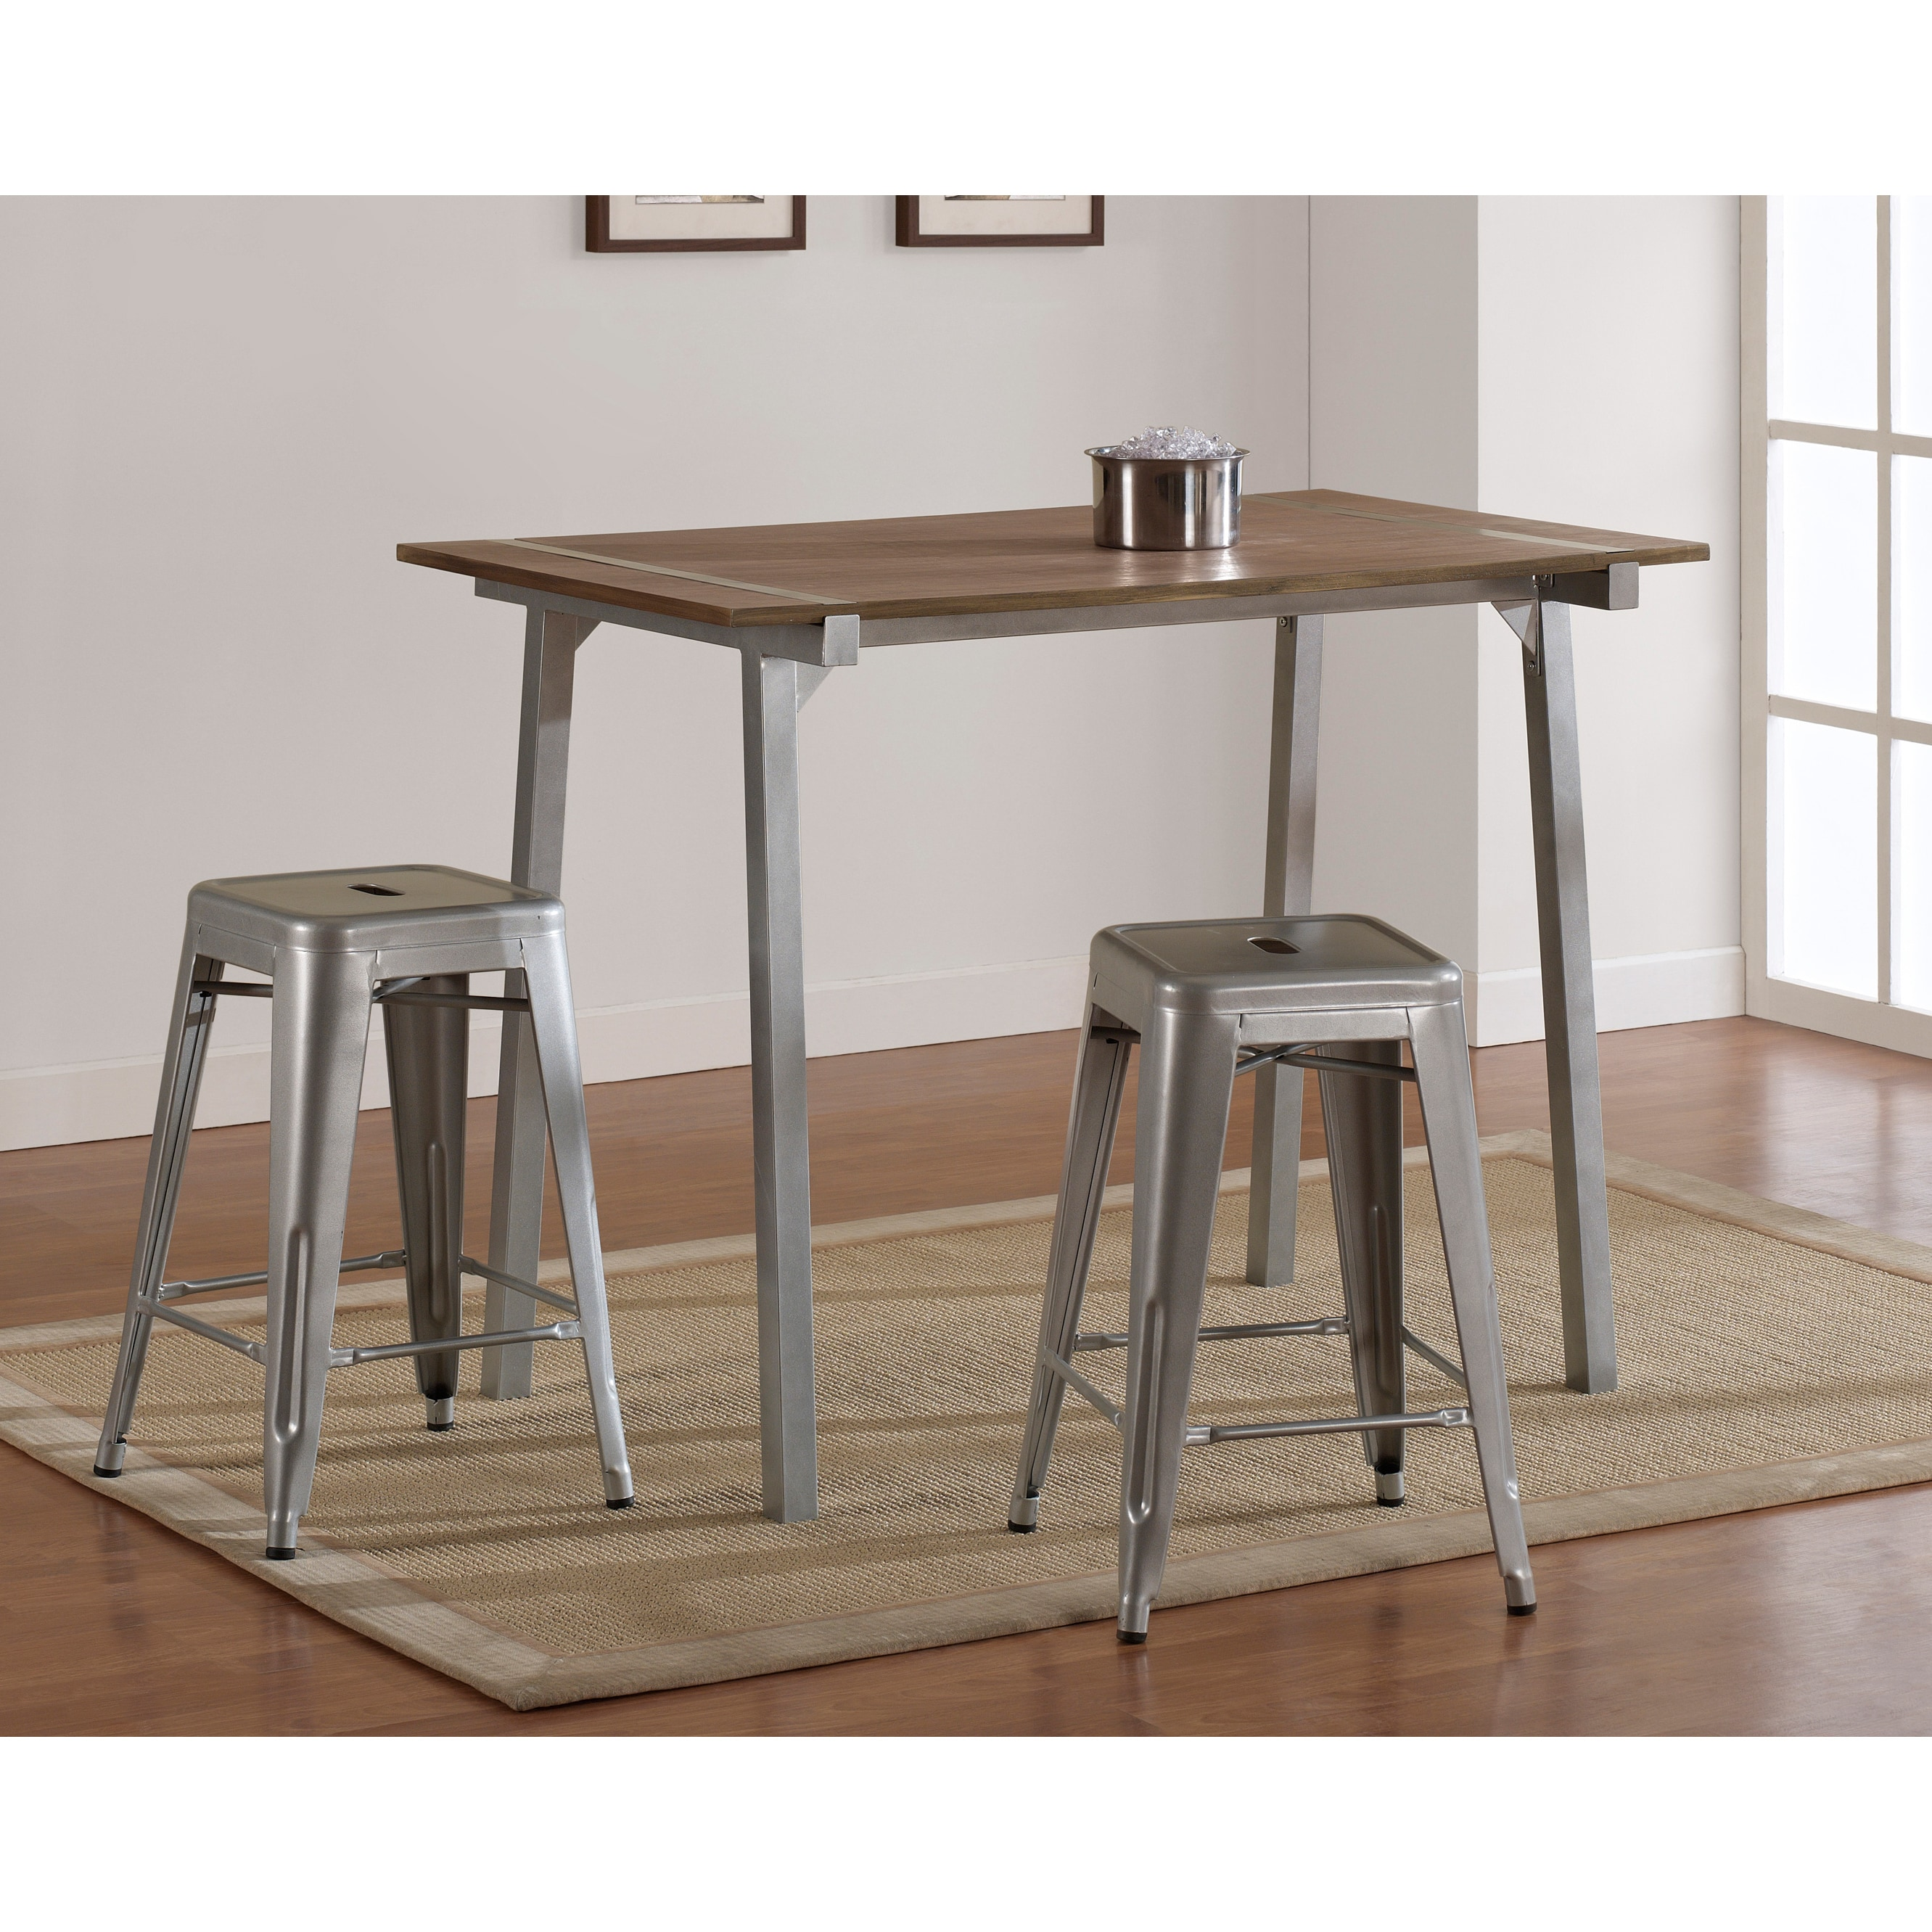 Tabourets Walmart Tabouret Metal And Wood Table